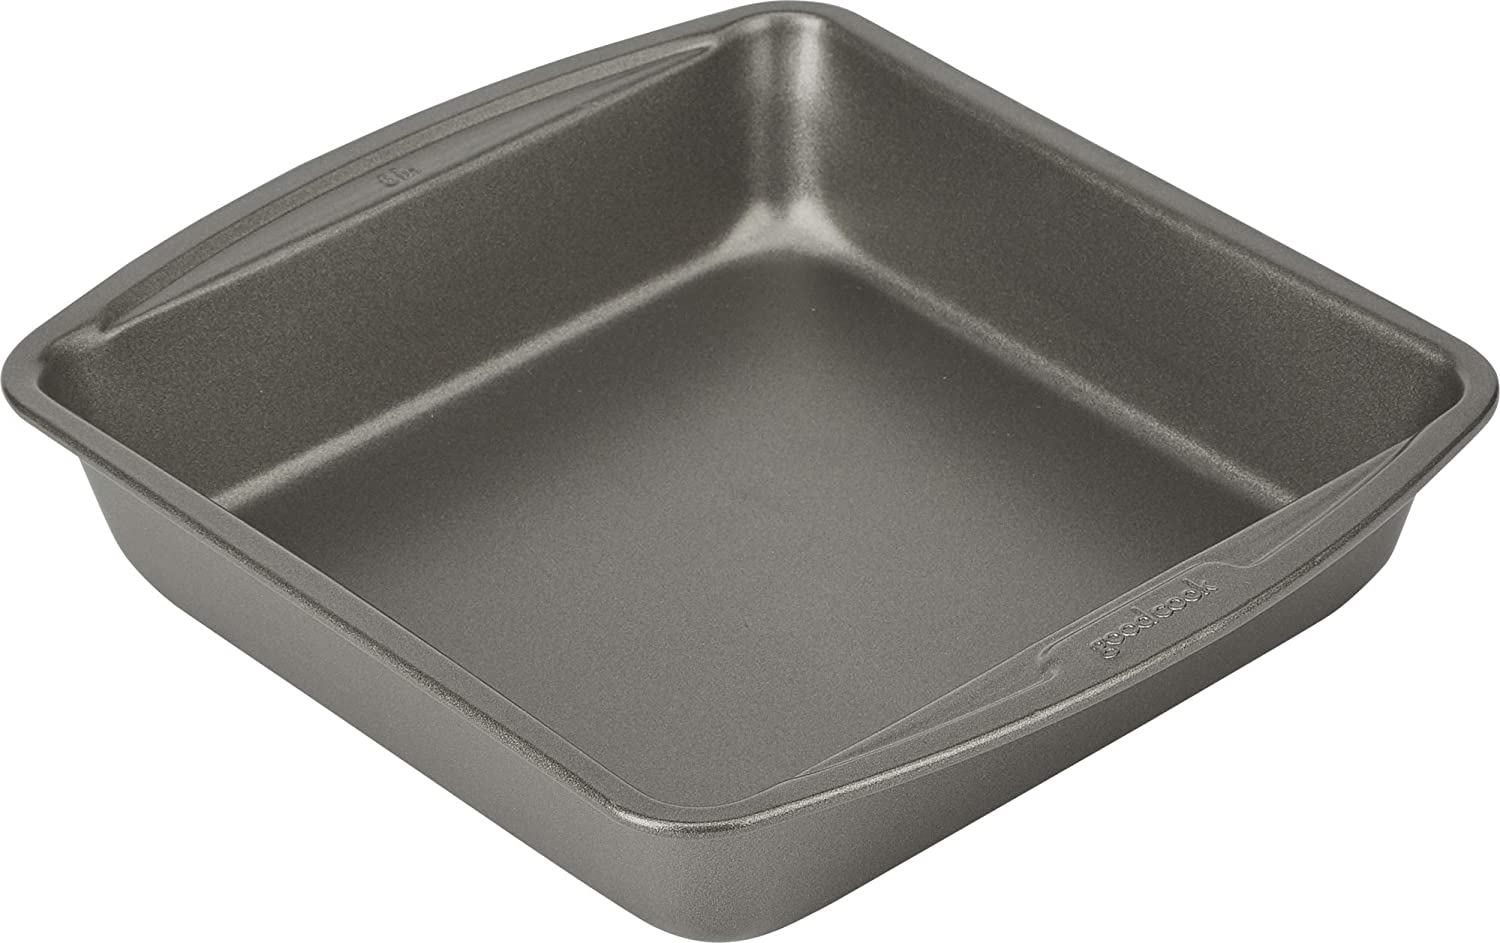 8 Inch x 8 Inch Square Cake Pan